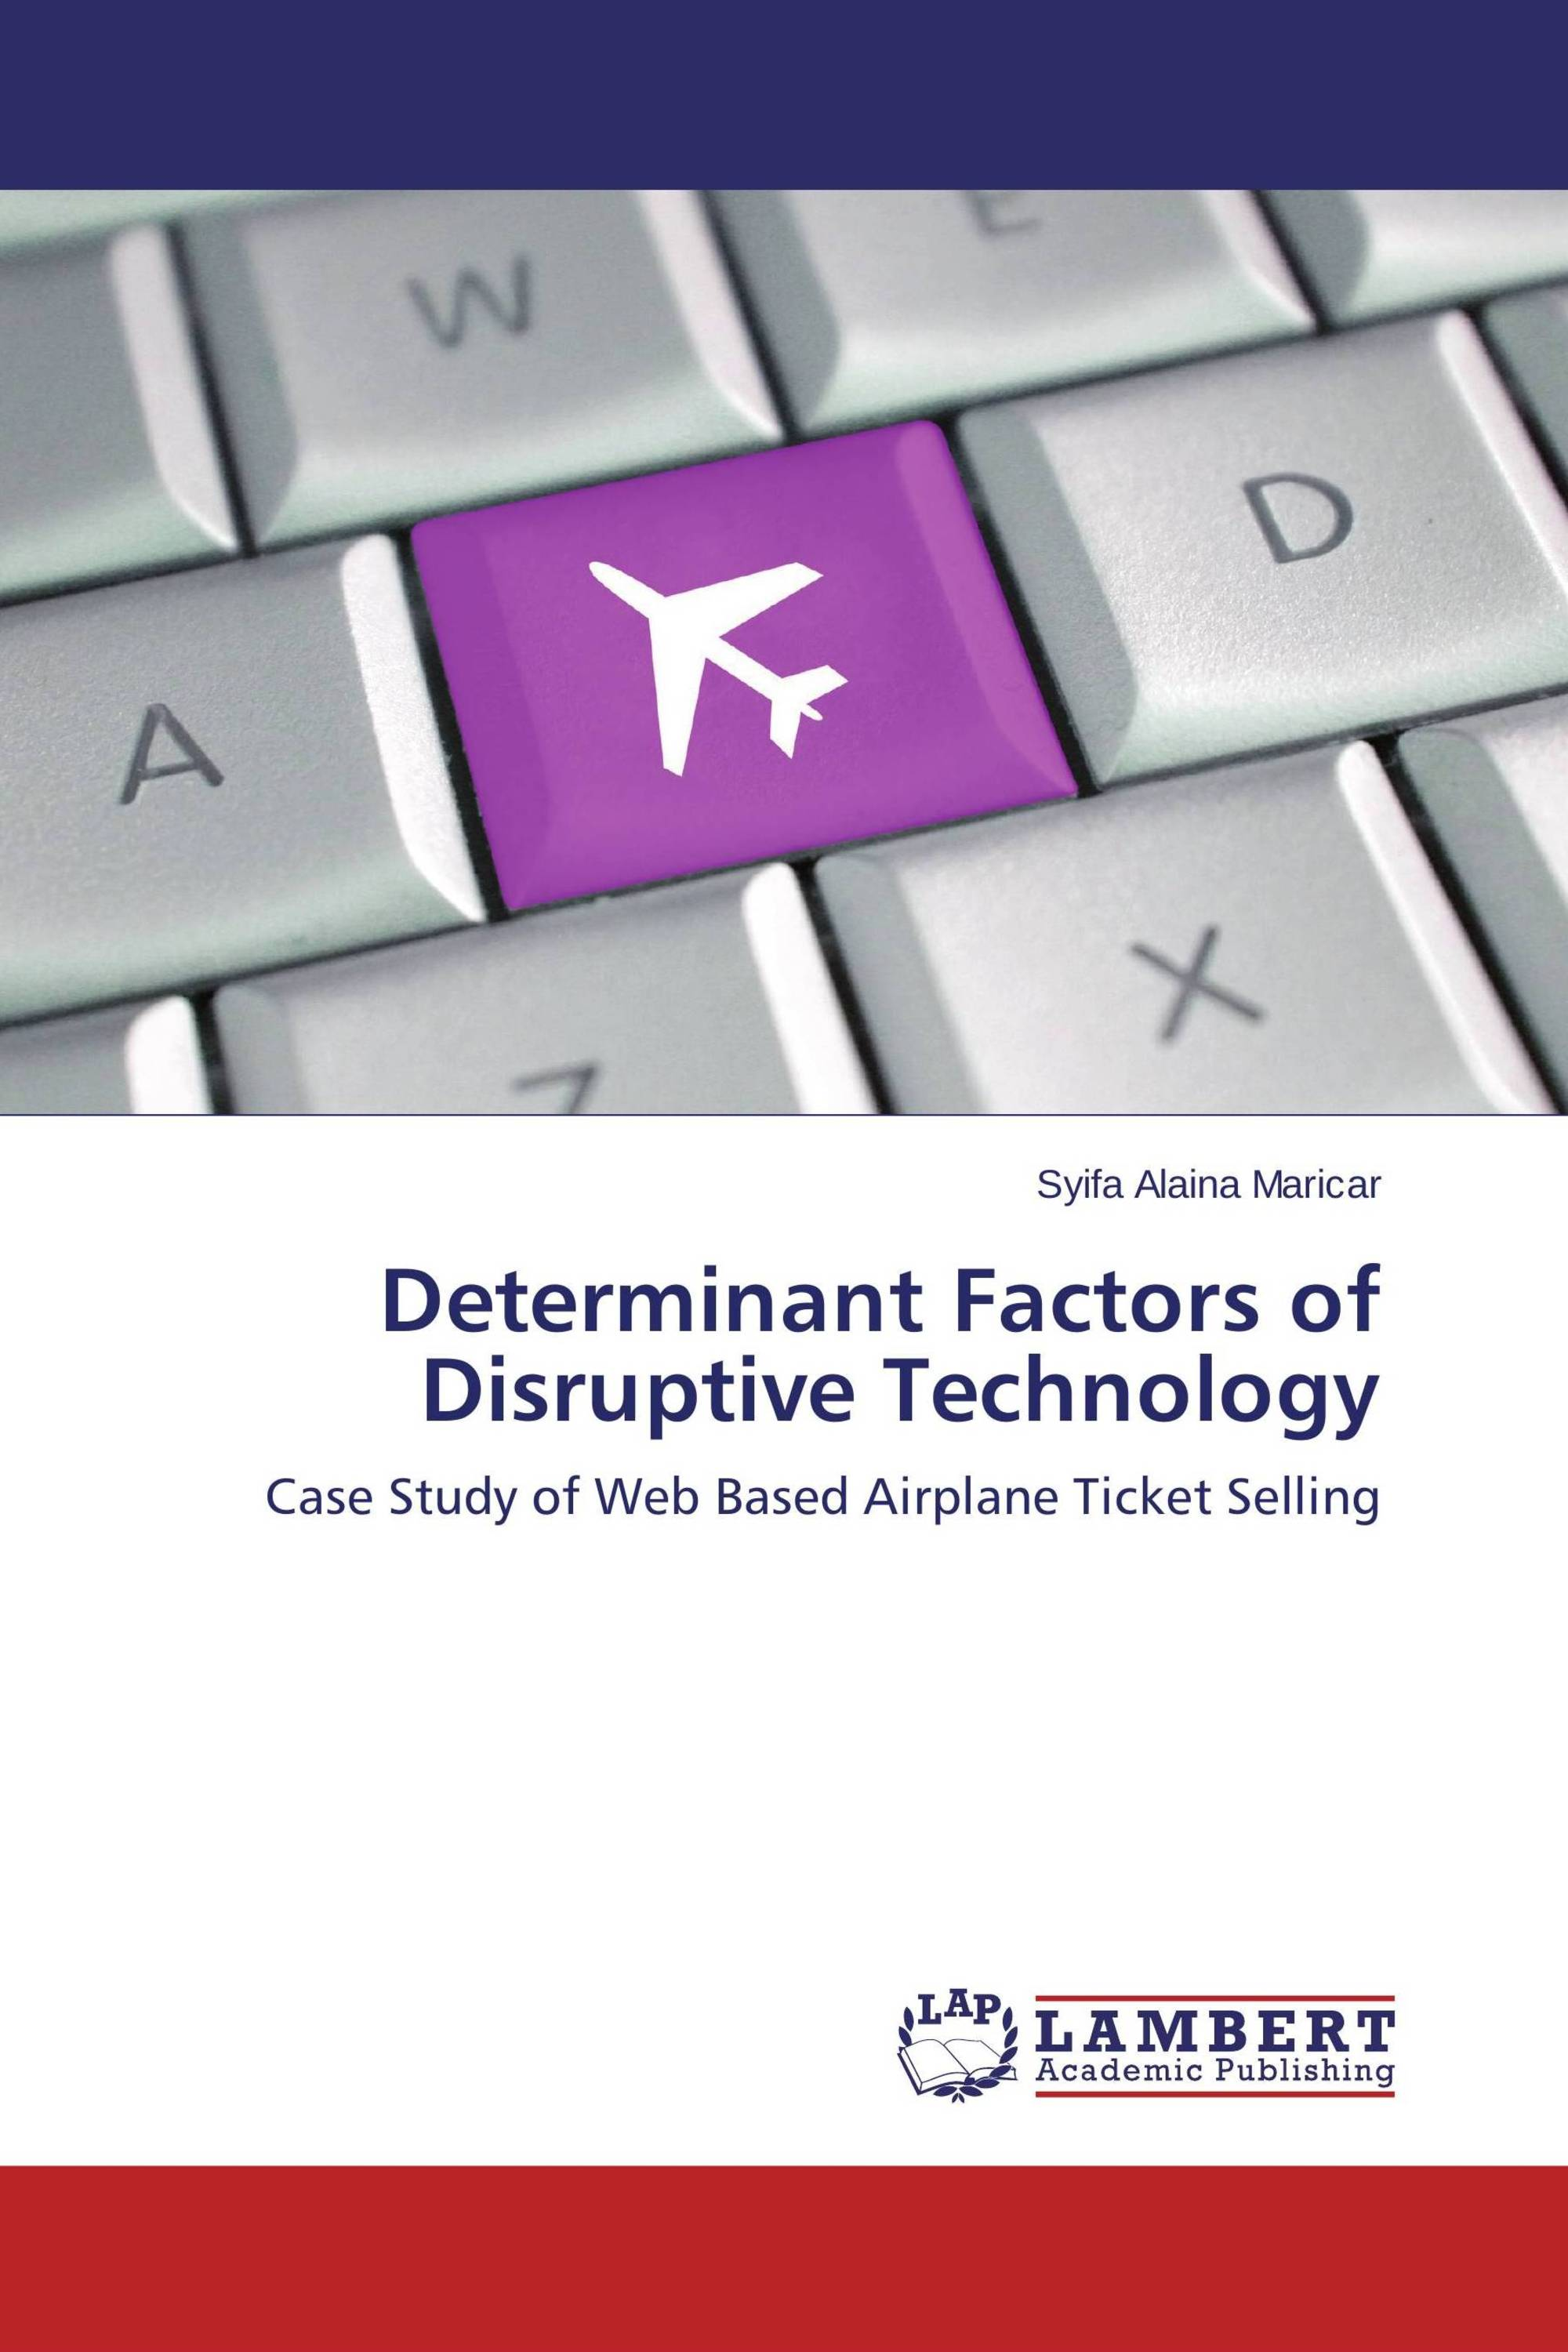 is the ipad a disruptive technology case study